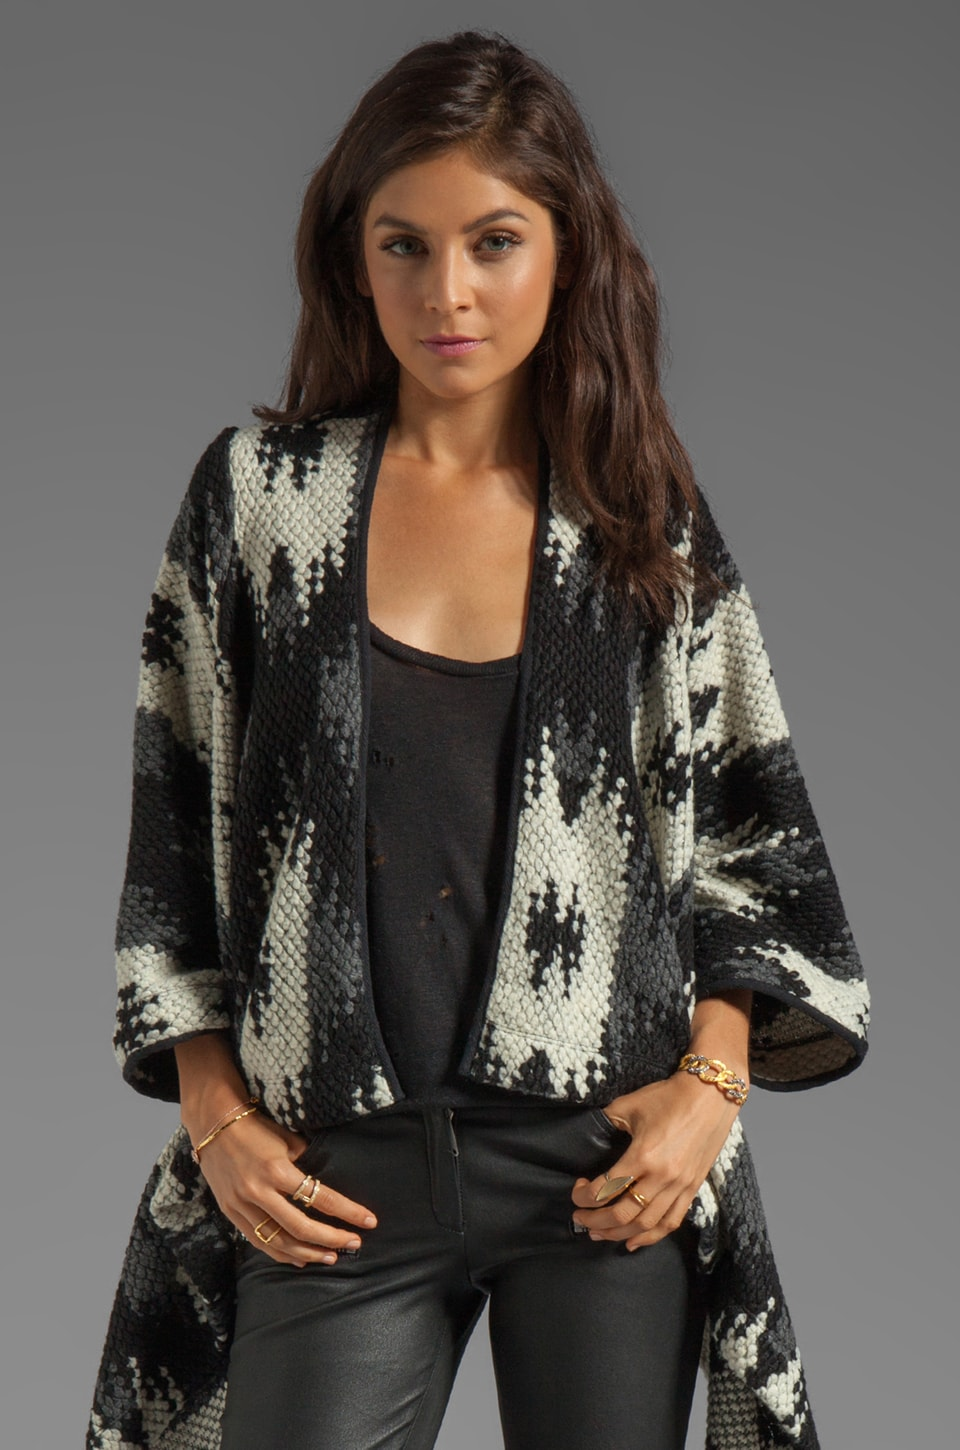 Dolce Vita Kadias Edgy Wool Sweater in Black Multi